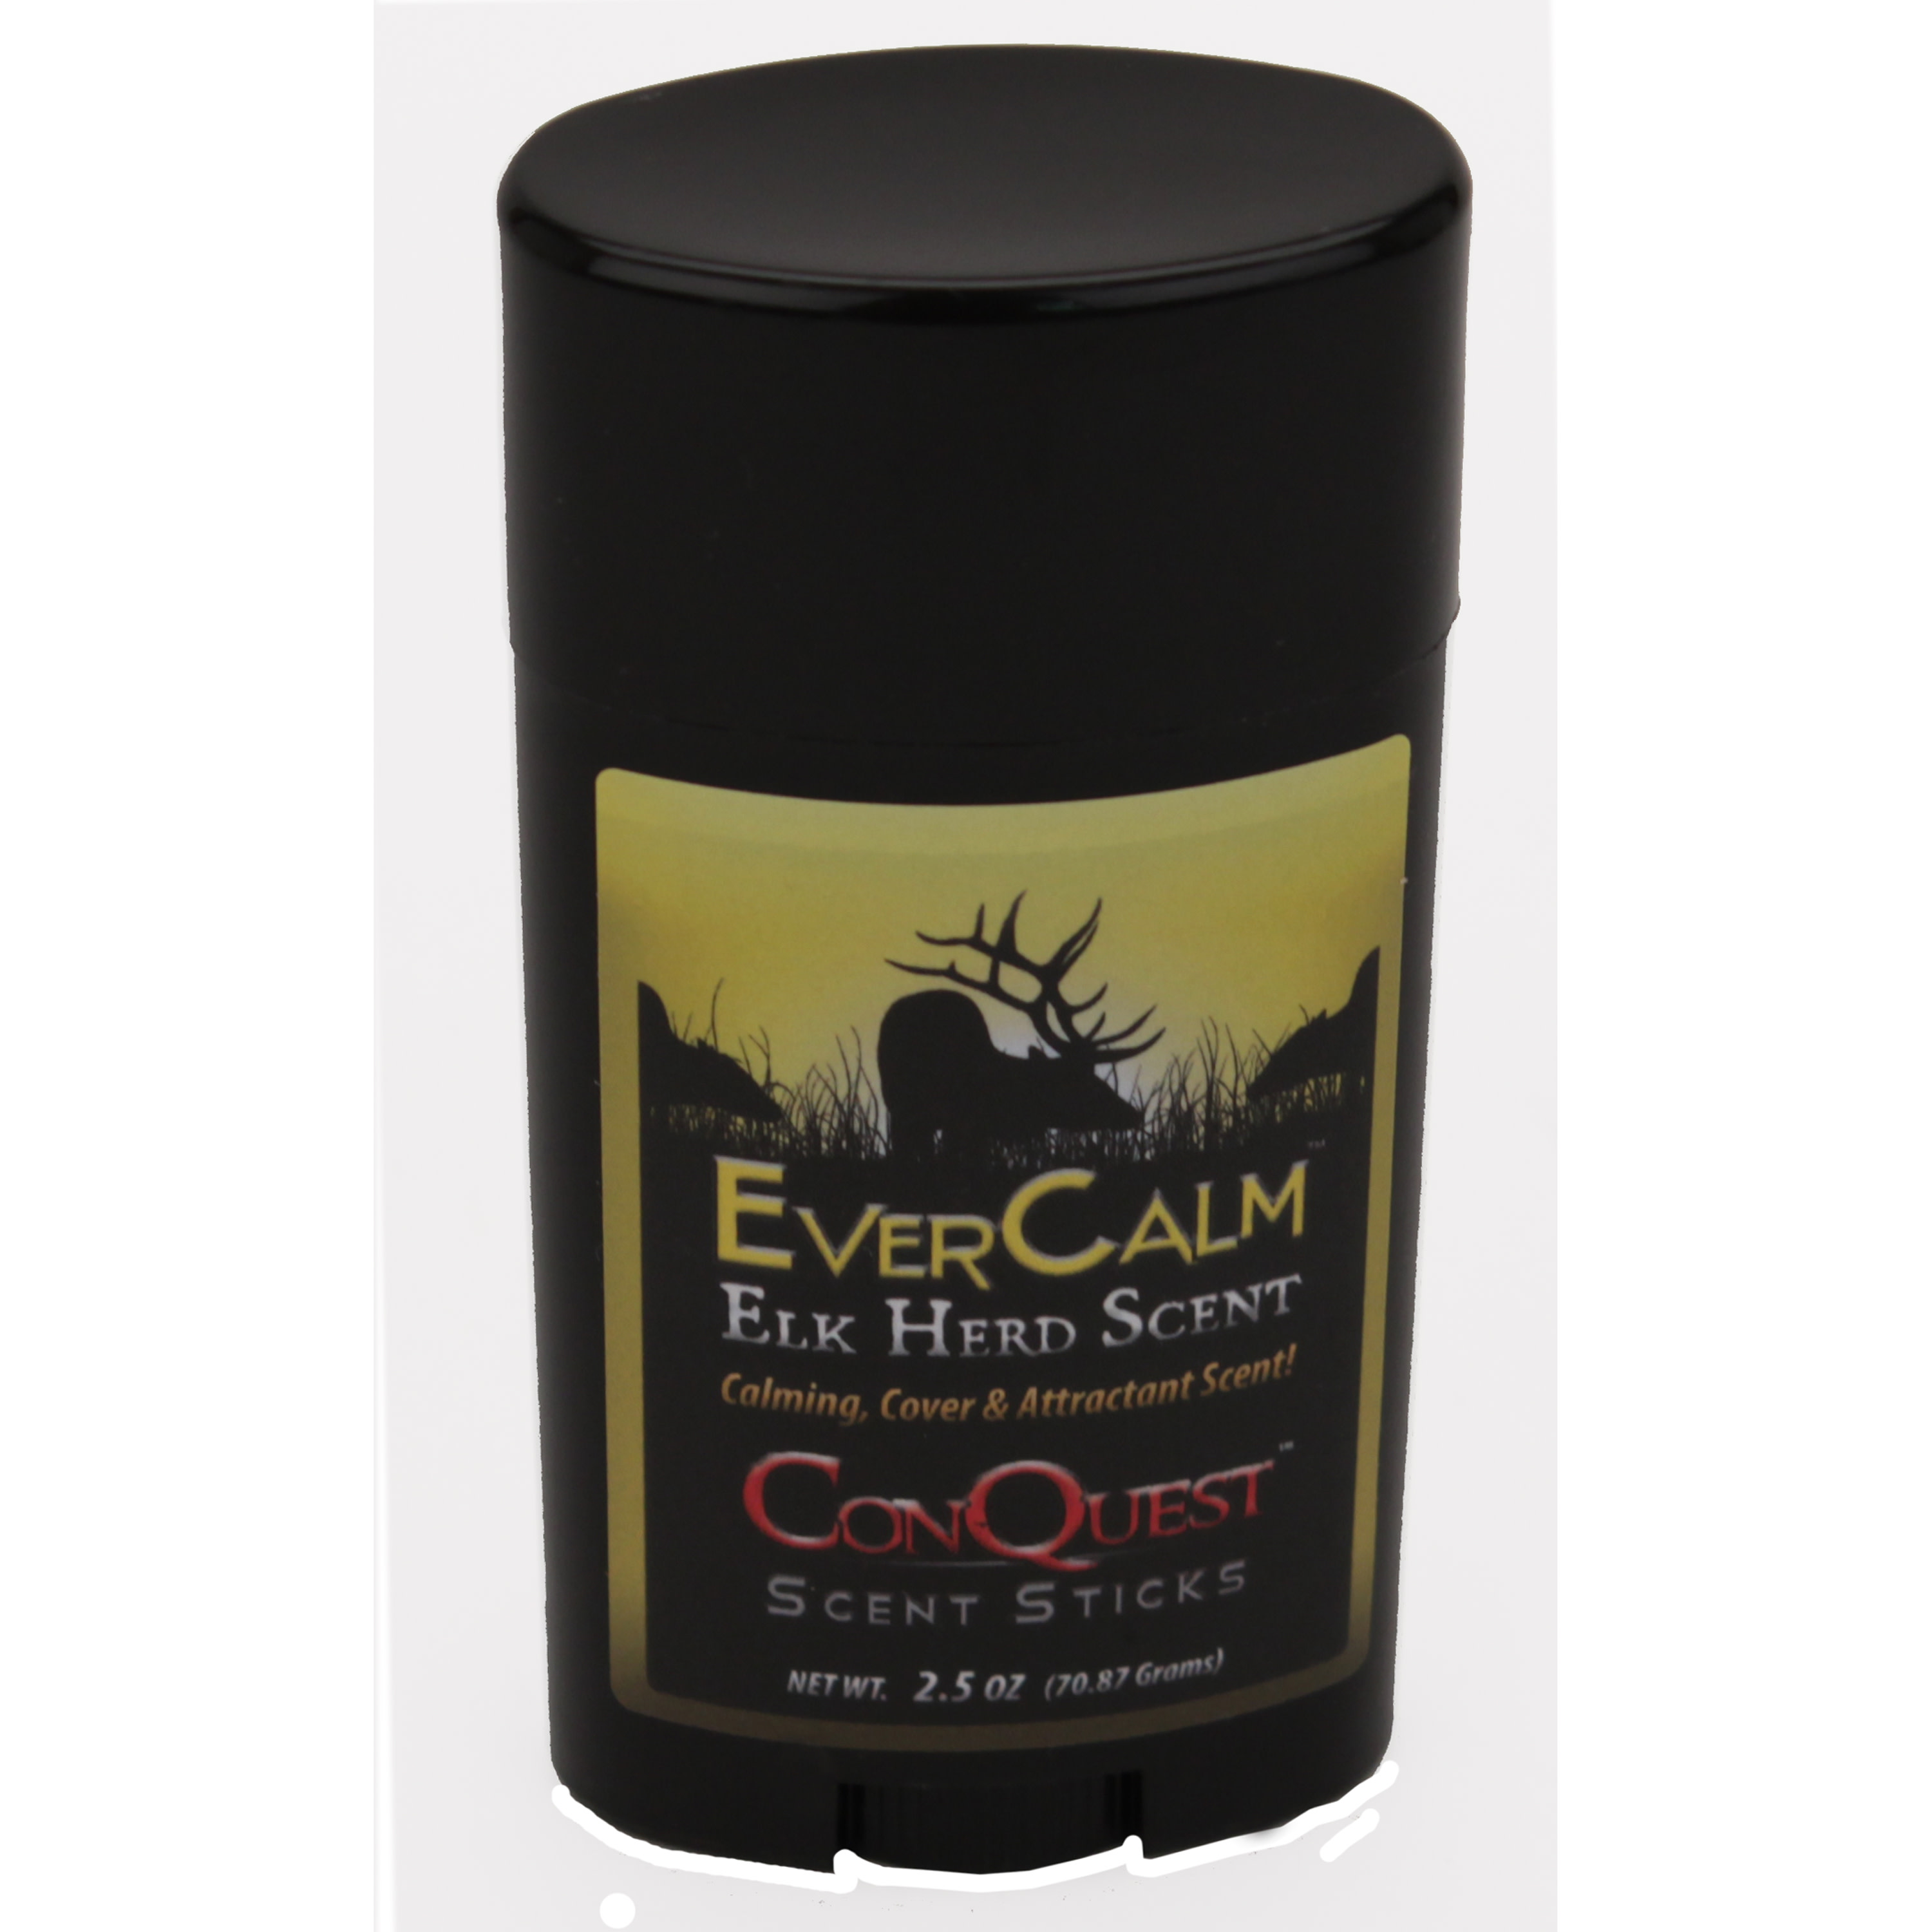 Conquest Scents Ever Calm Elk Herd Scent Stick 2.5 oz